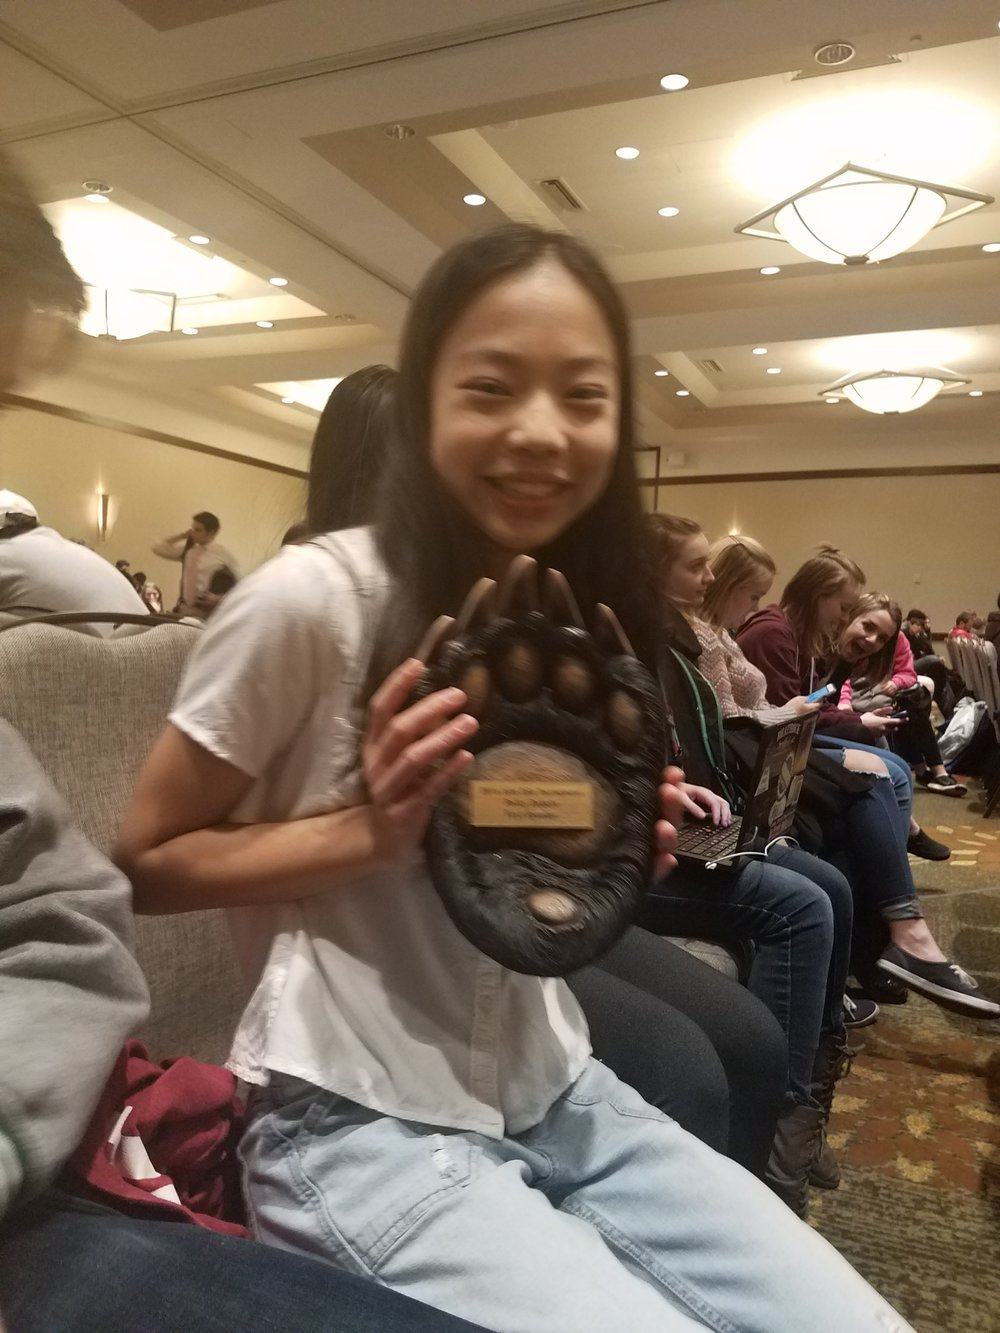 Luola Chen - Top Speaker in Policy Debate at the Blake Tournament Jenny Han, her partner, was 2nd Speaker! Way to go girls!